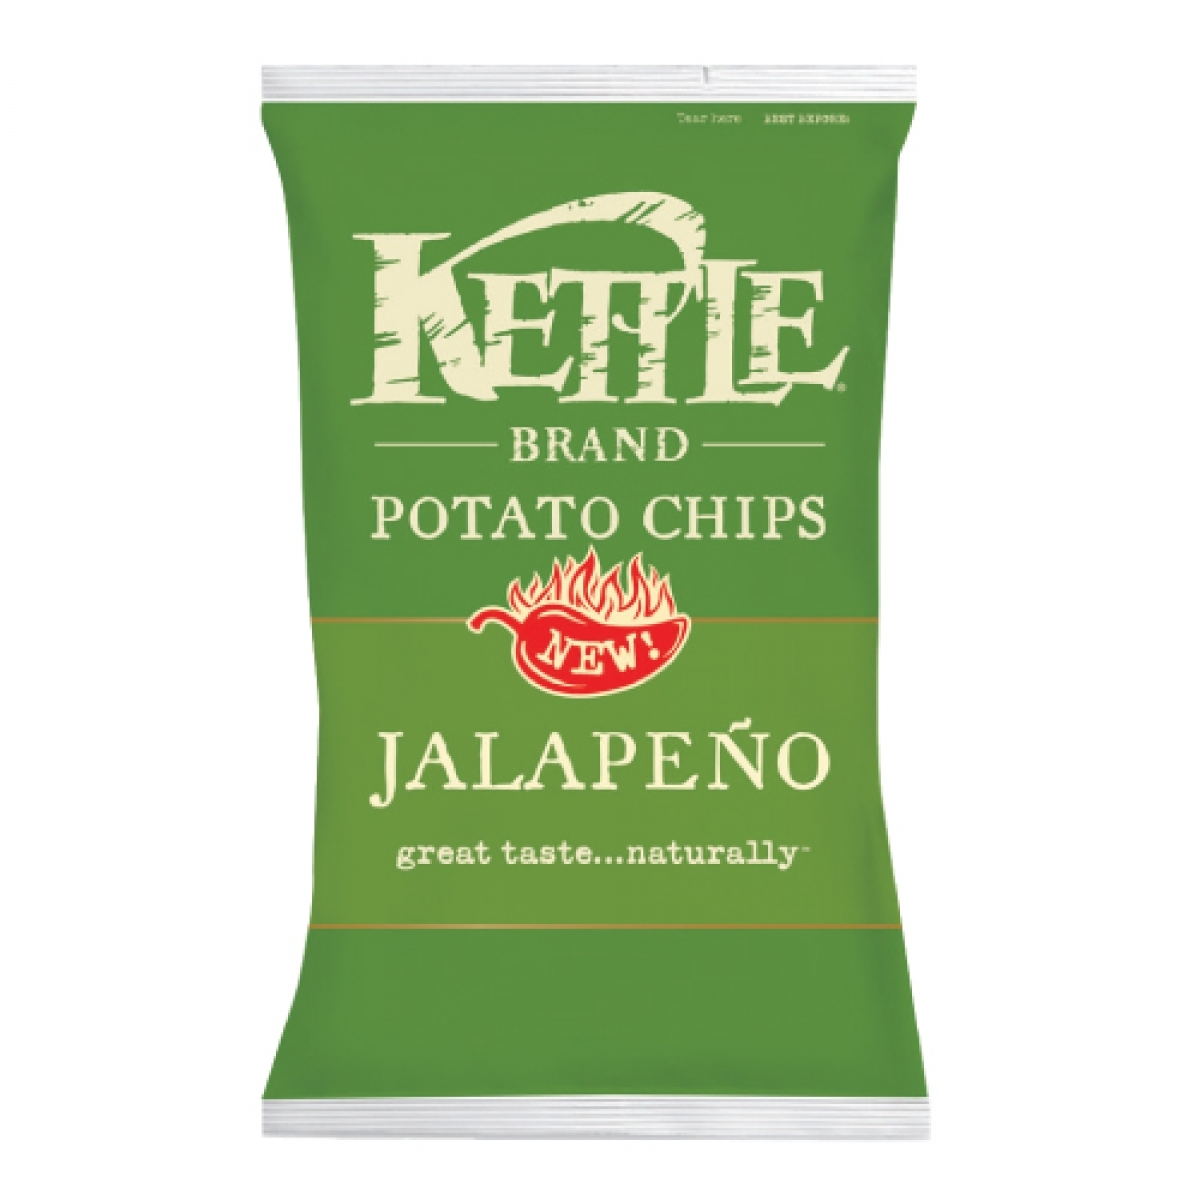 Kettle Brand All Natural Potato Chips – Jalapeno (Regular 5oz)